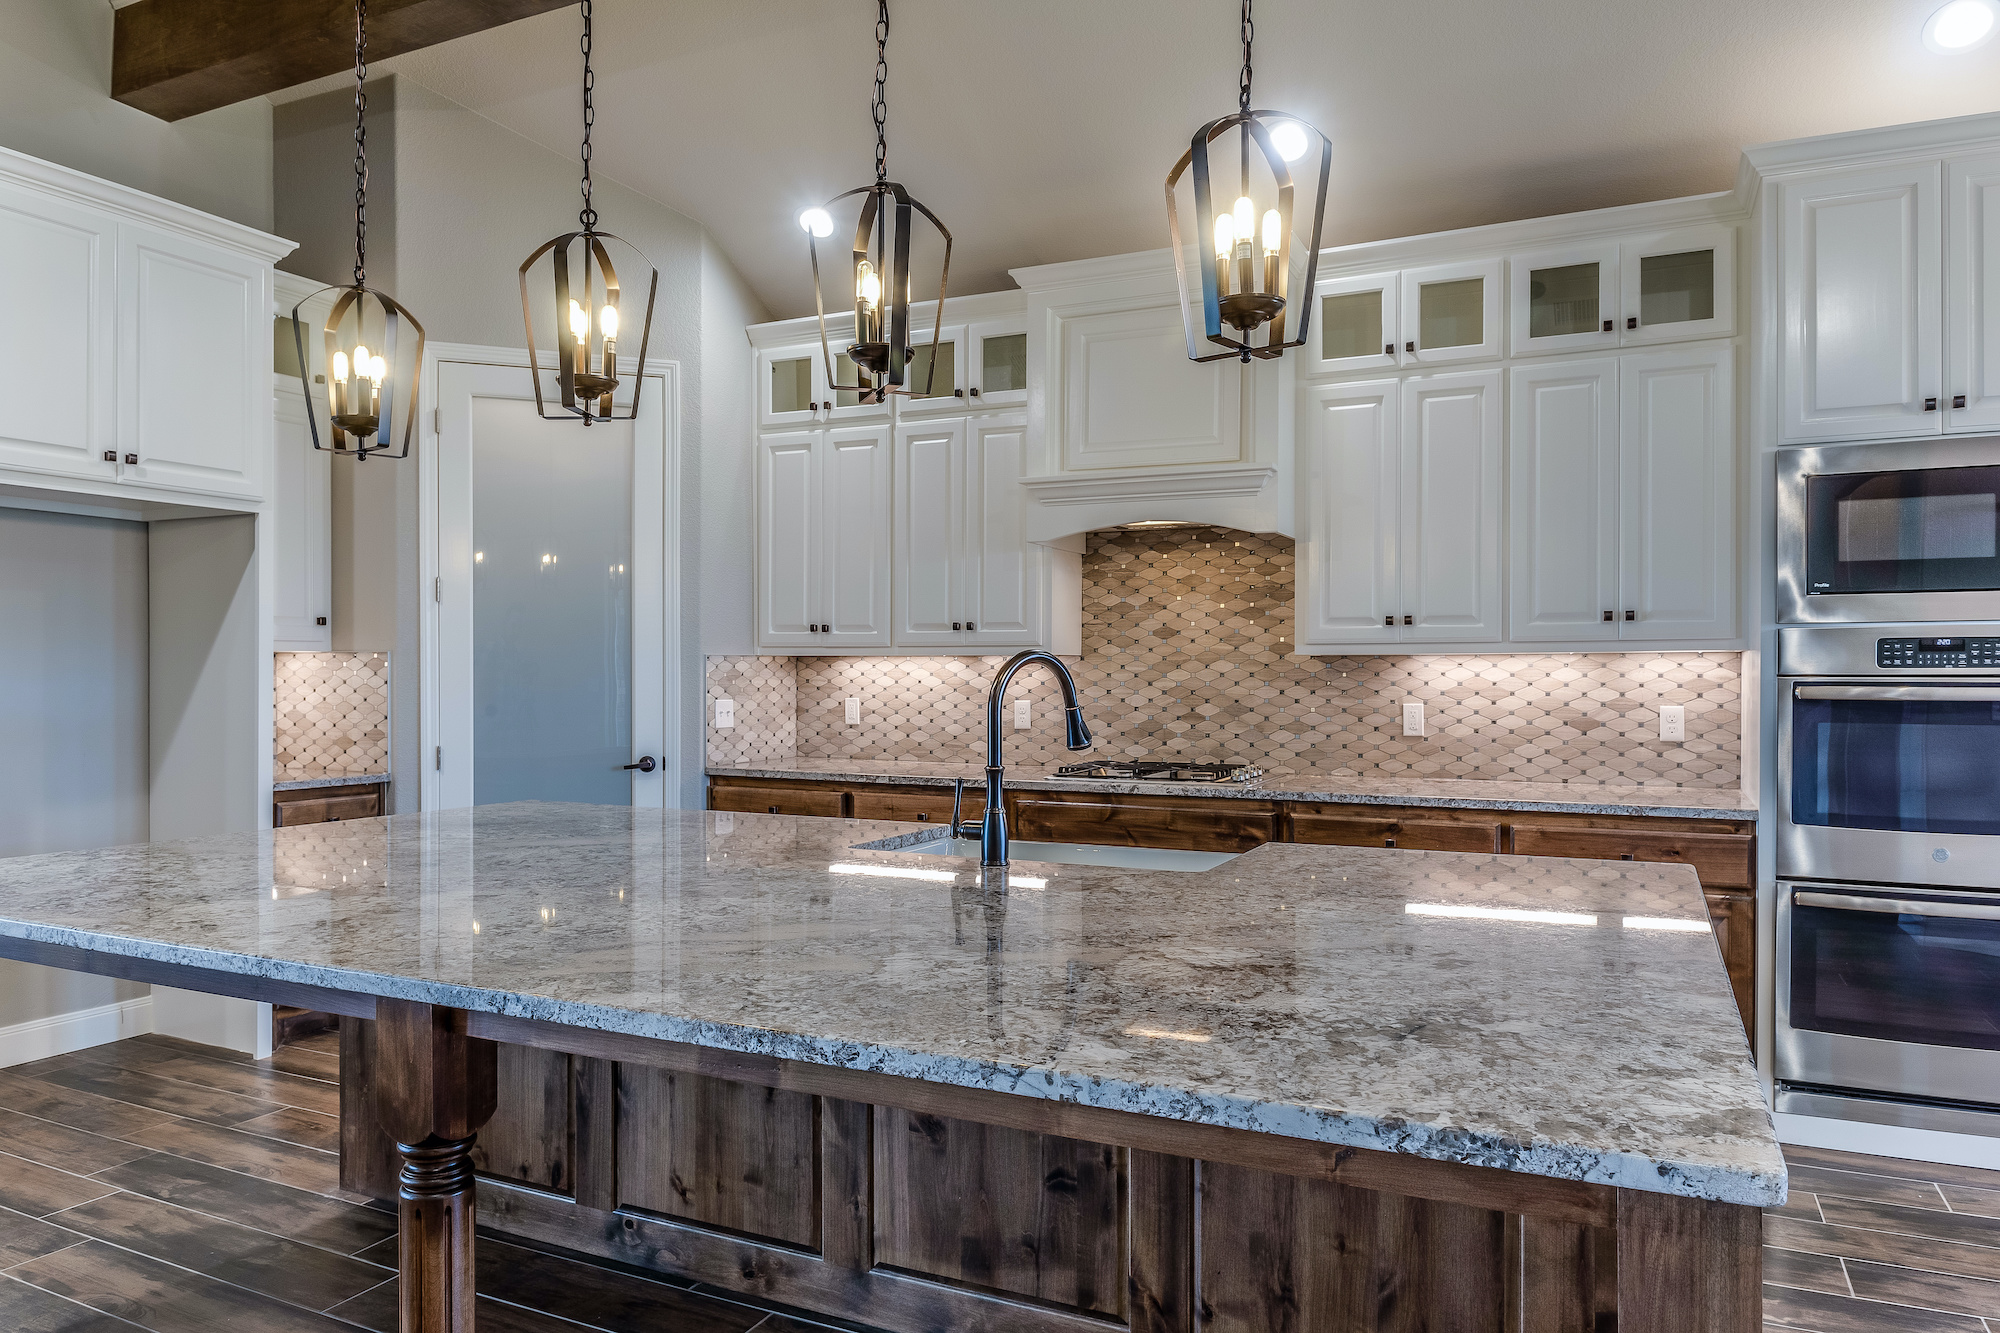 Kitchen with stone countertops, tile backsplash and custom cabinets